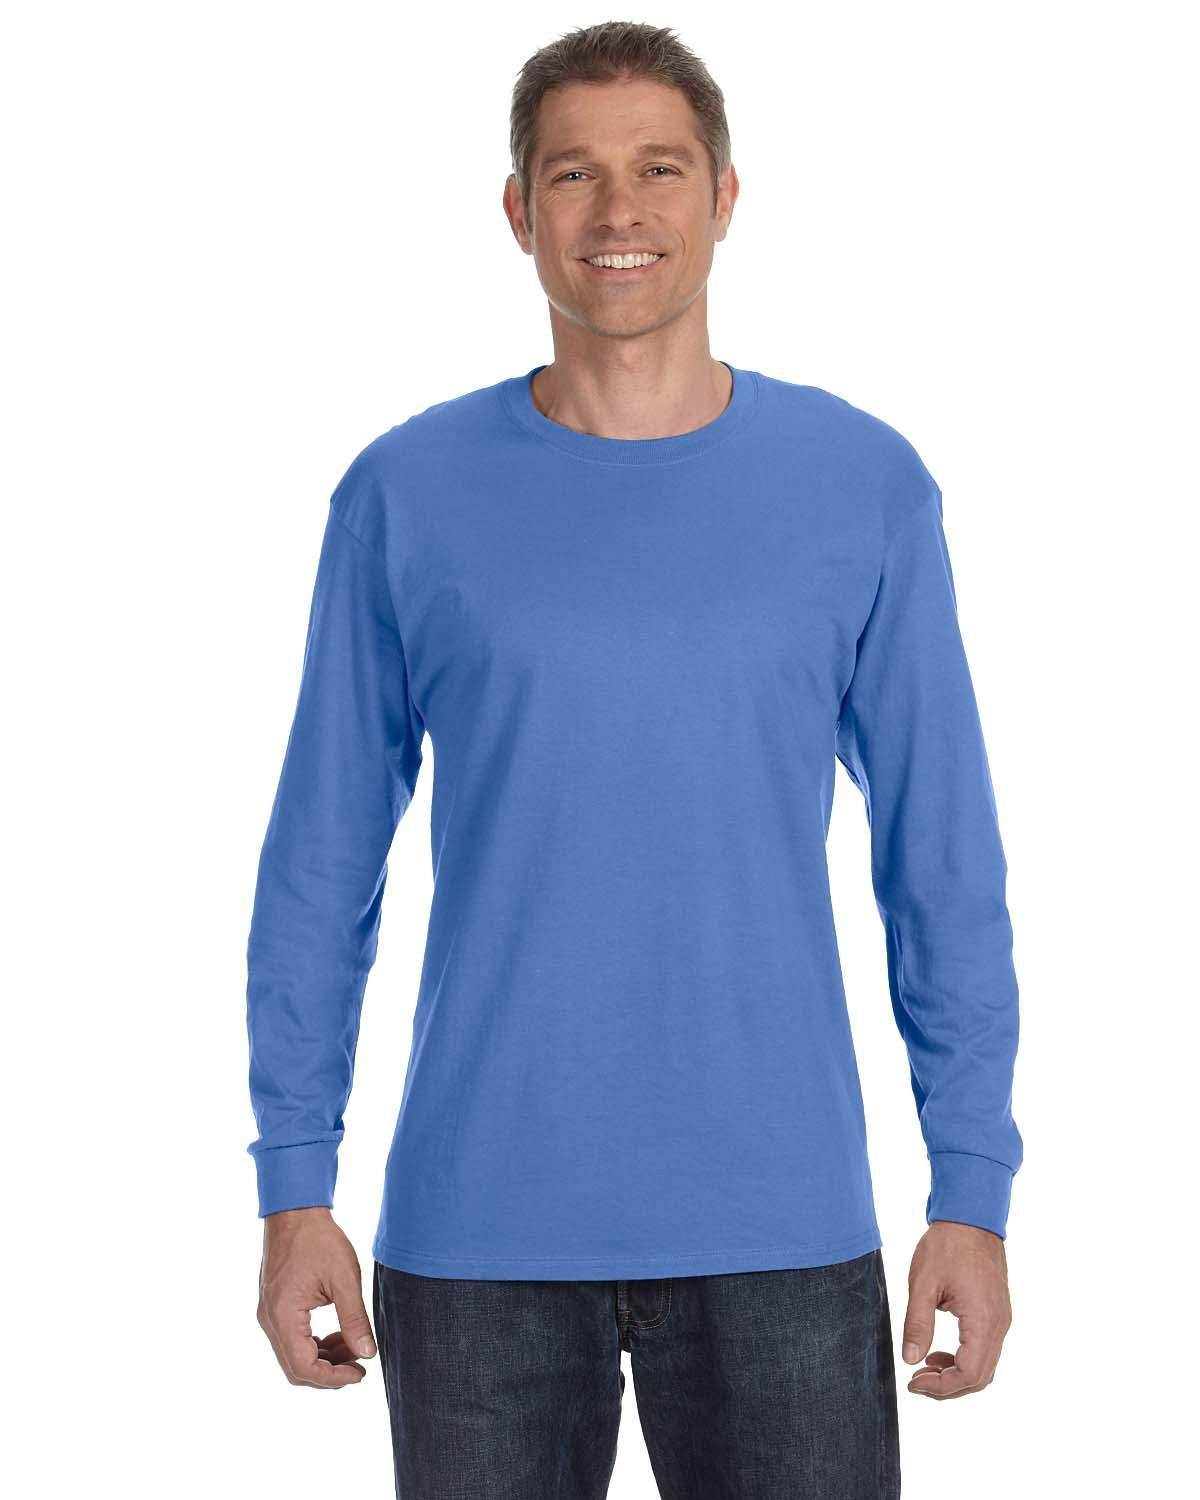 Hanes 5586 Mens Tagless Long Sleeve T-Shirt Lime Pack of 2